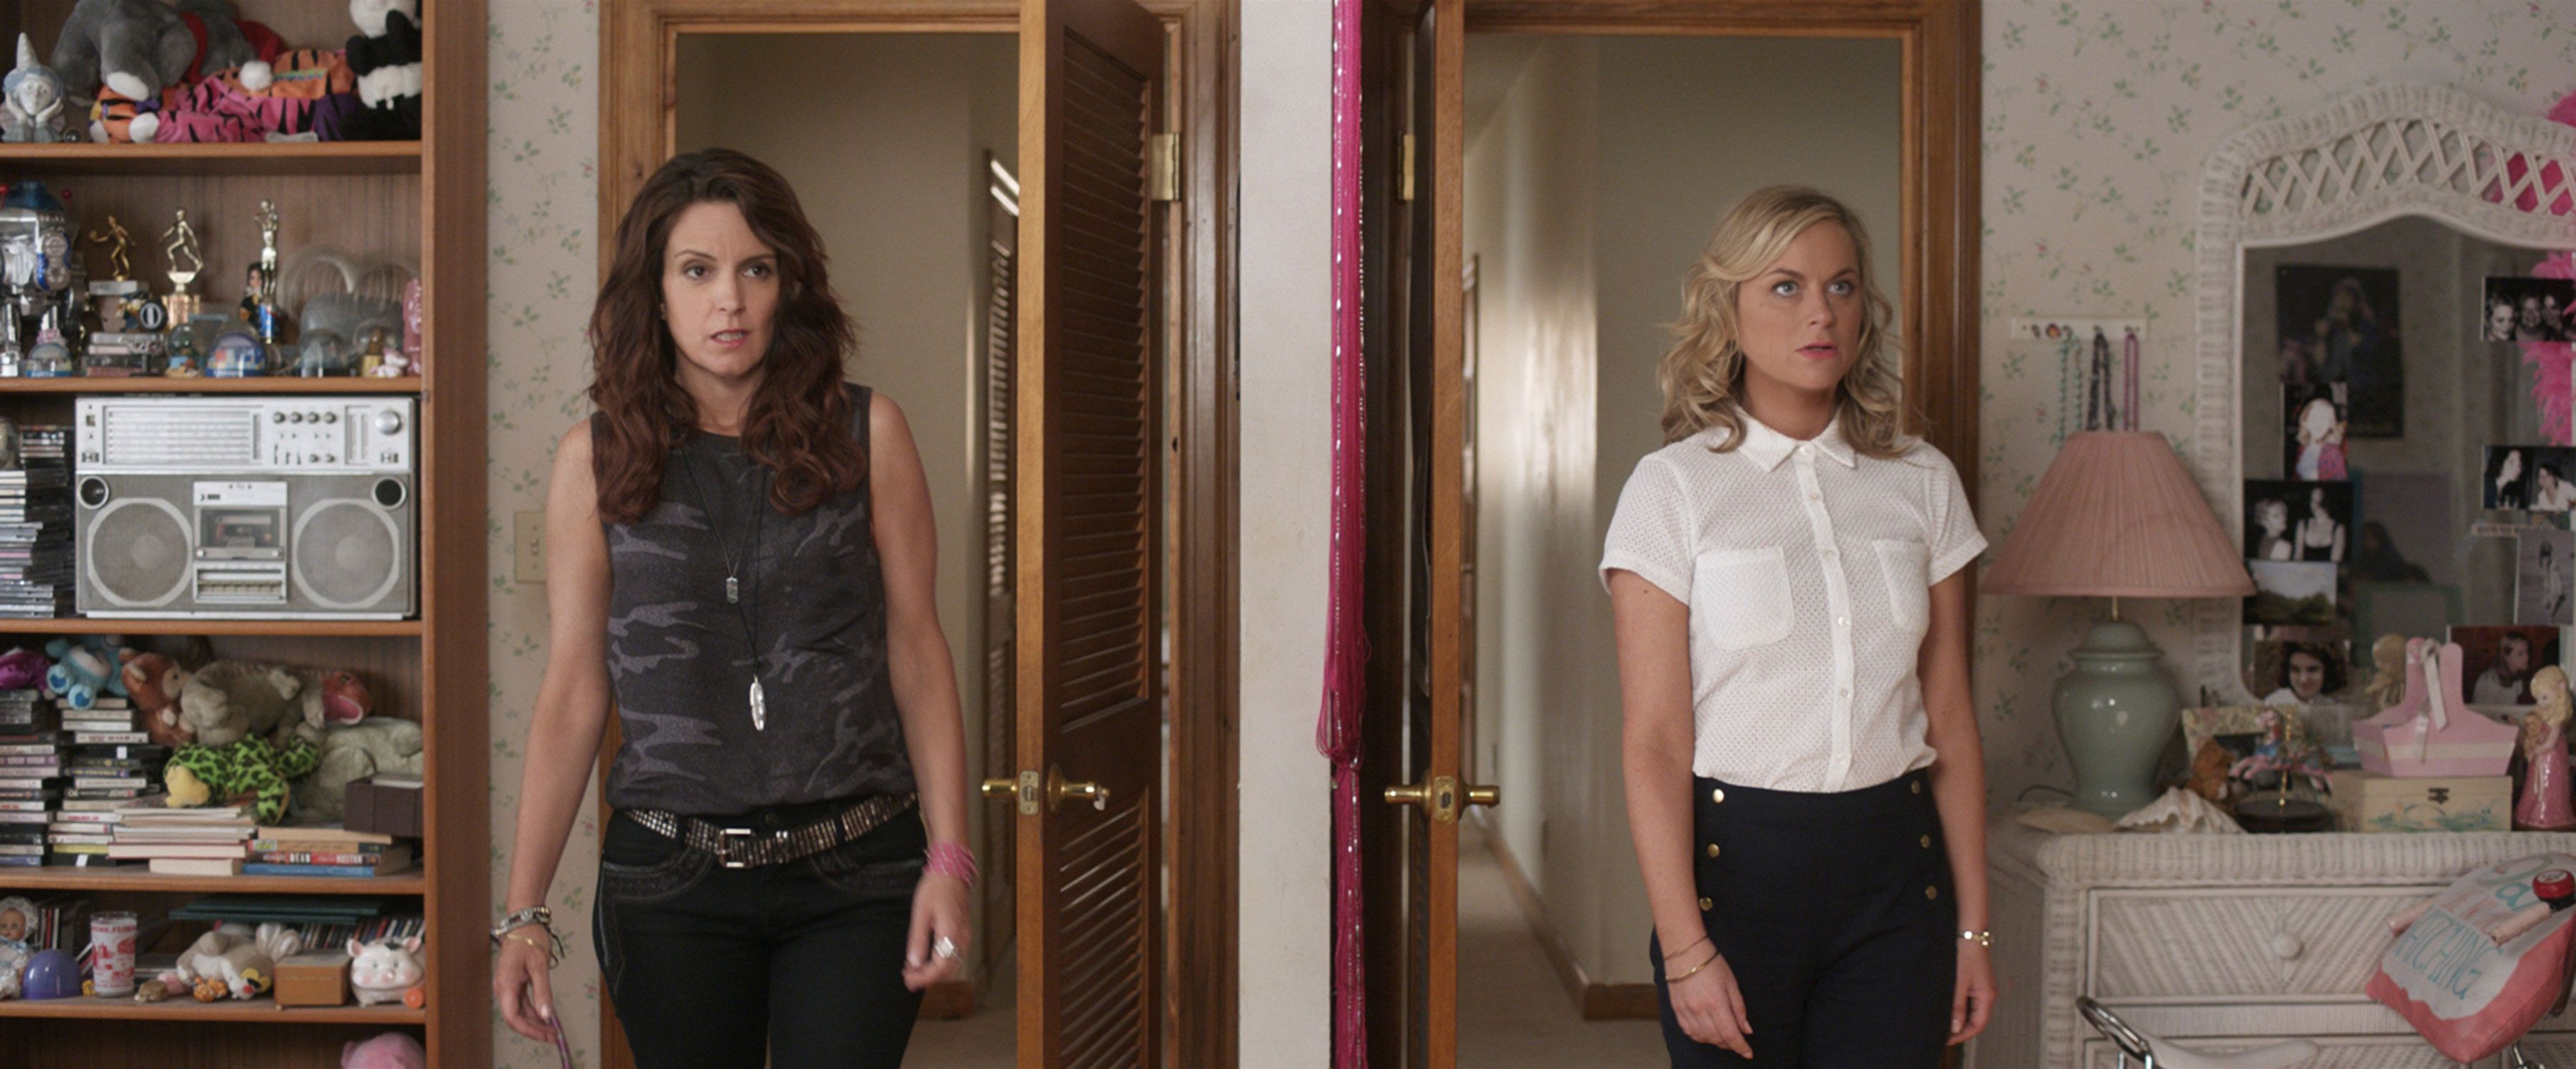 Amy Poehler Naked sisters': tina fey and amy poehler on playing sisters   collider